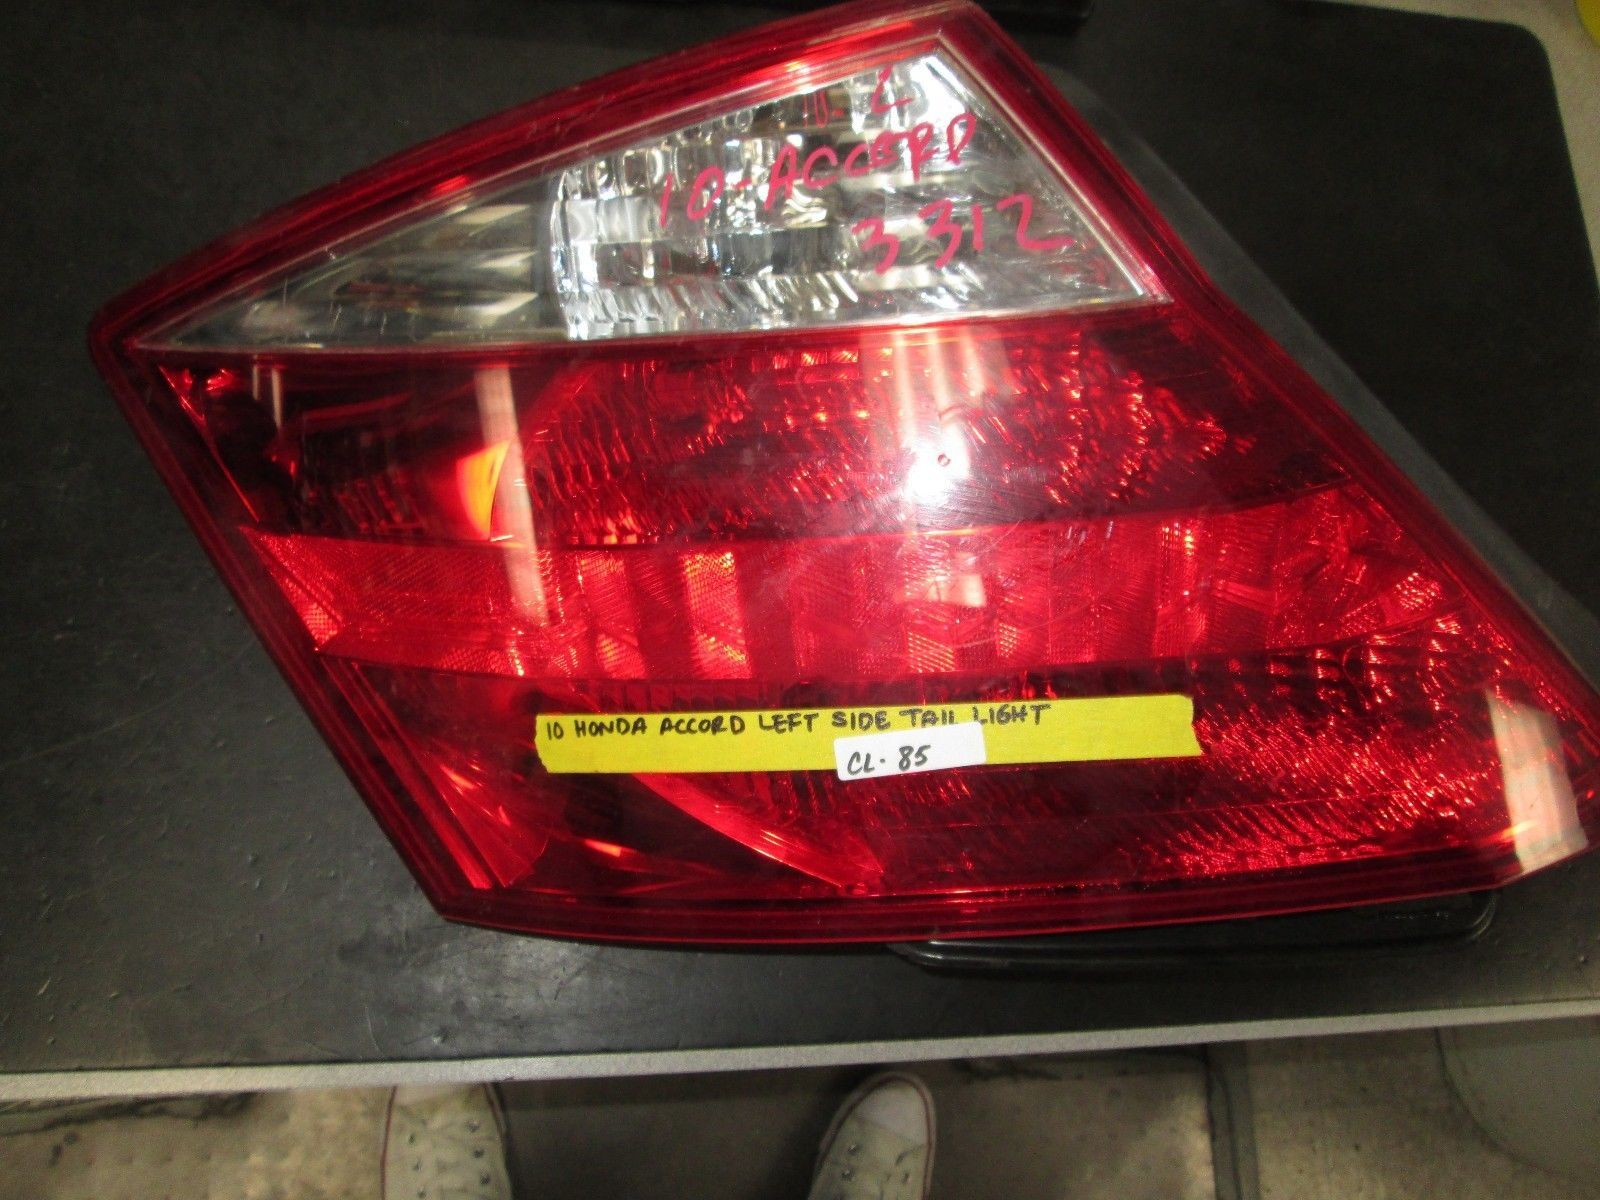 Primary image for 10 HONDA ACCORD LEFT SIDE TAIL LIGHT